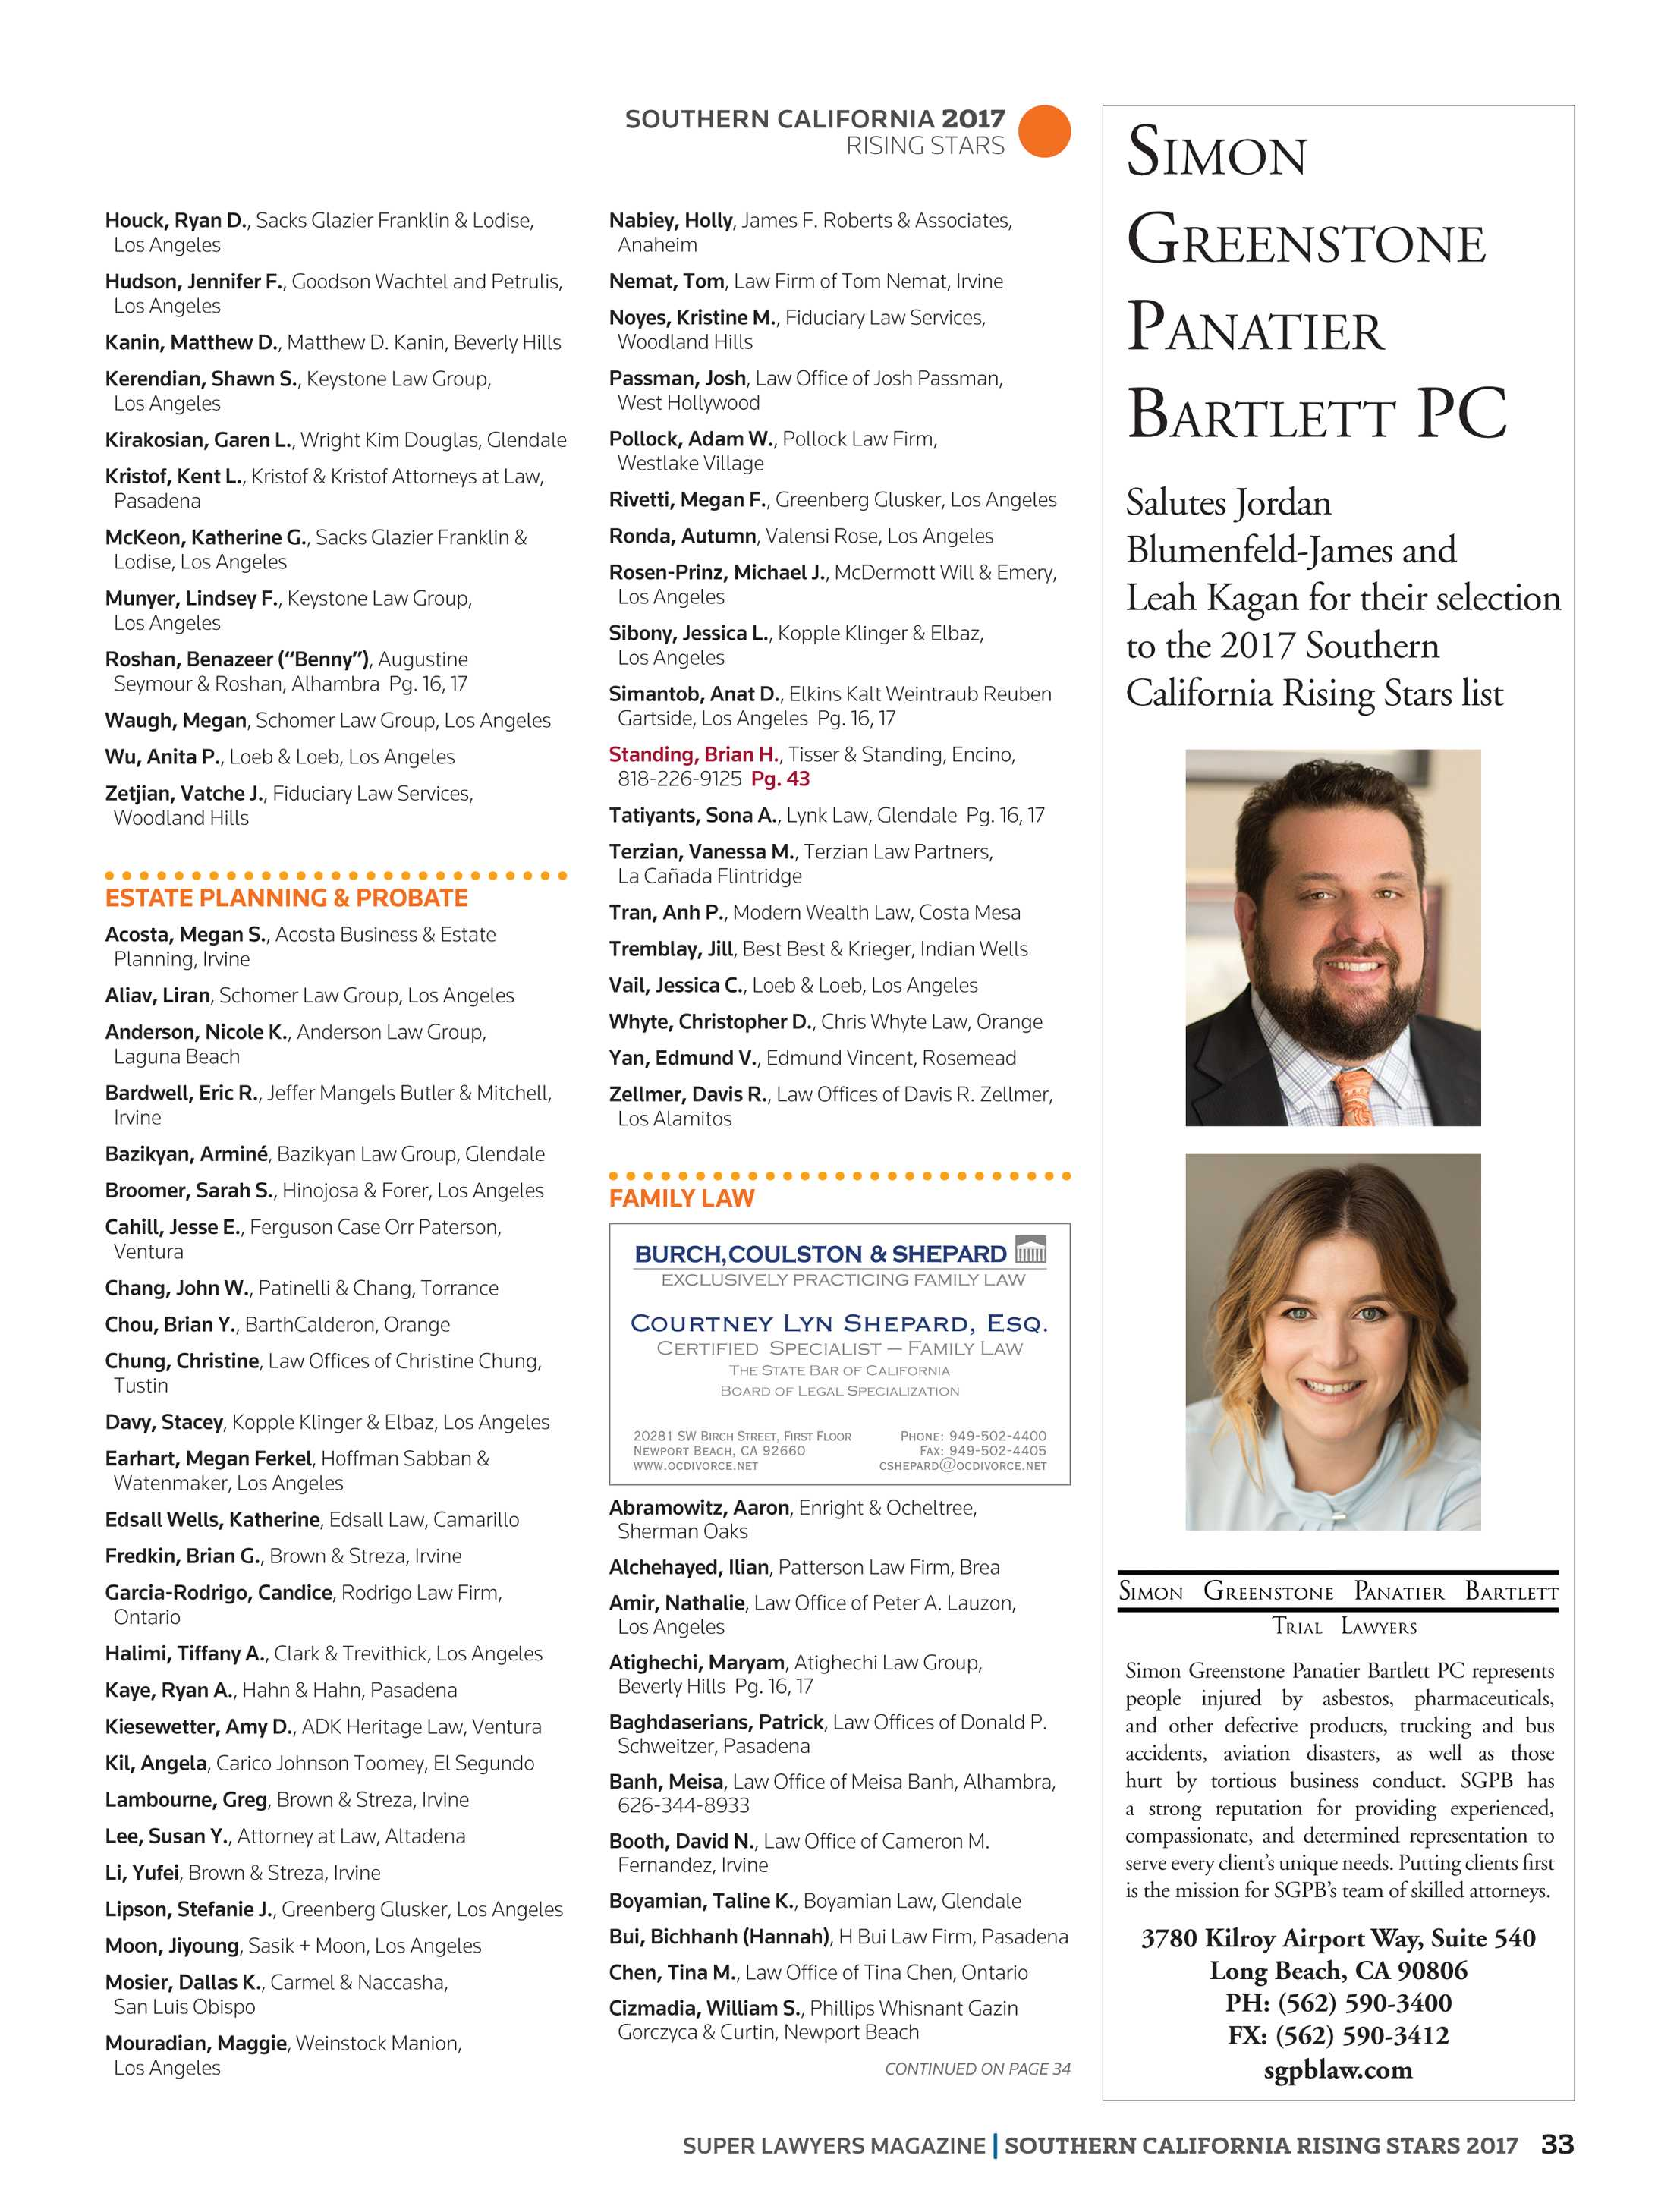 Super Lawyers - Southern California Rising Stars 2017 - page 33